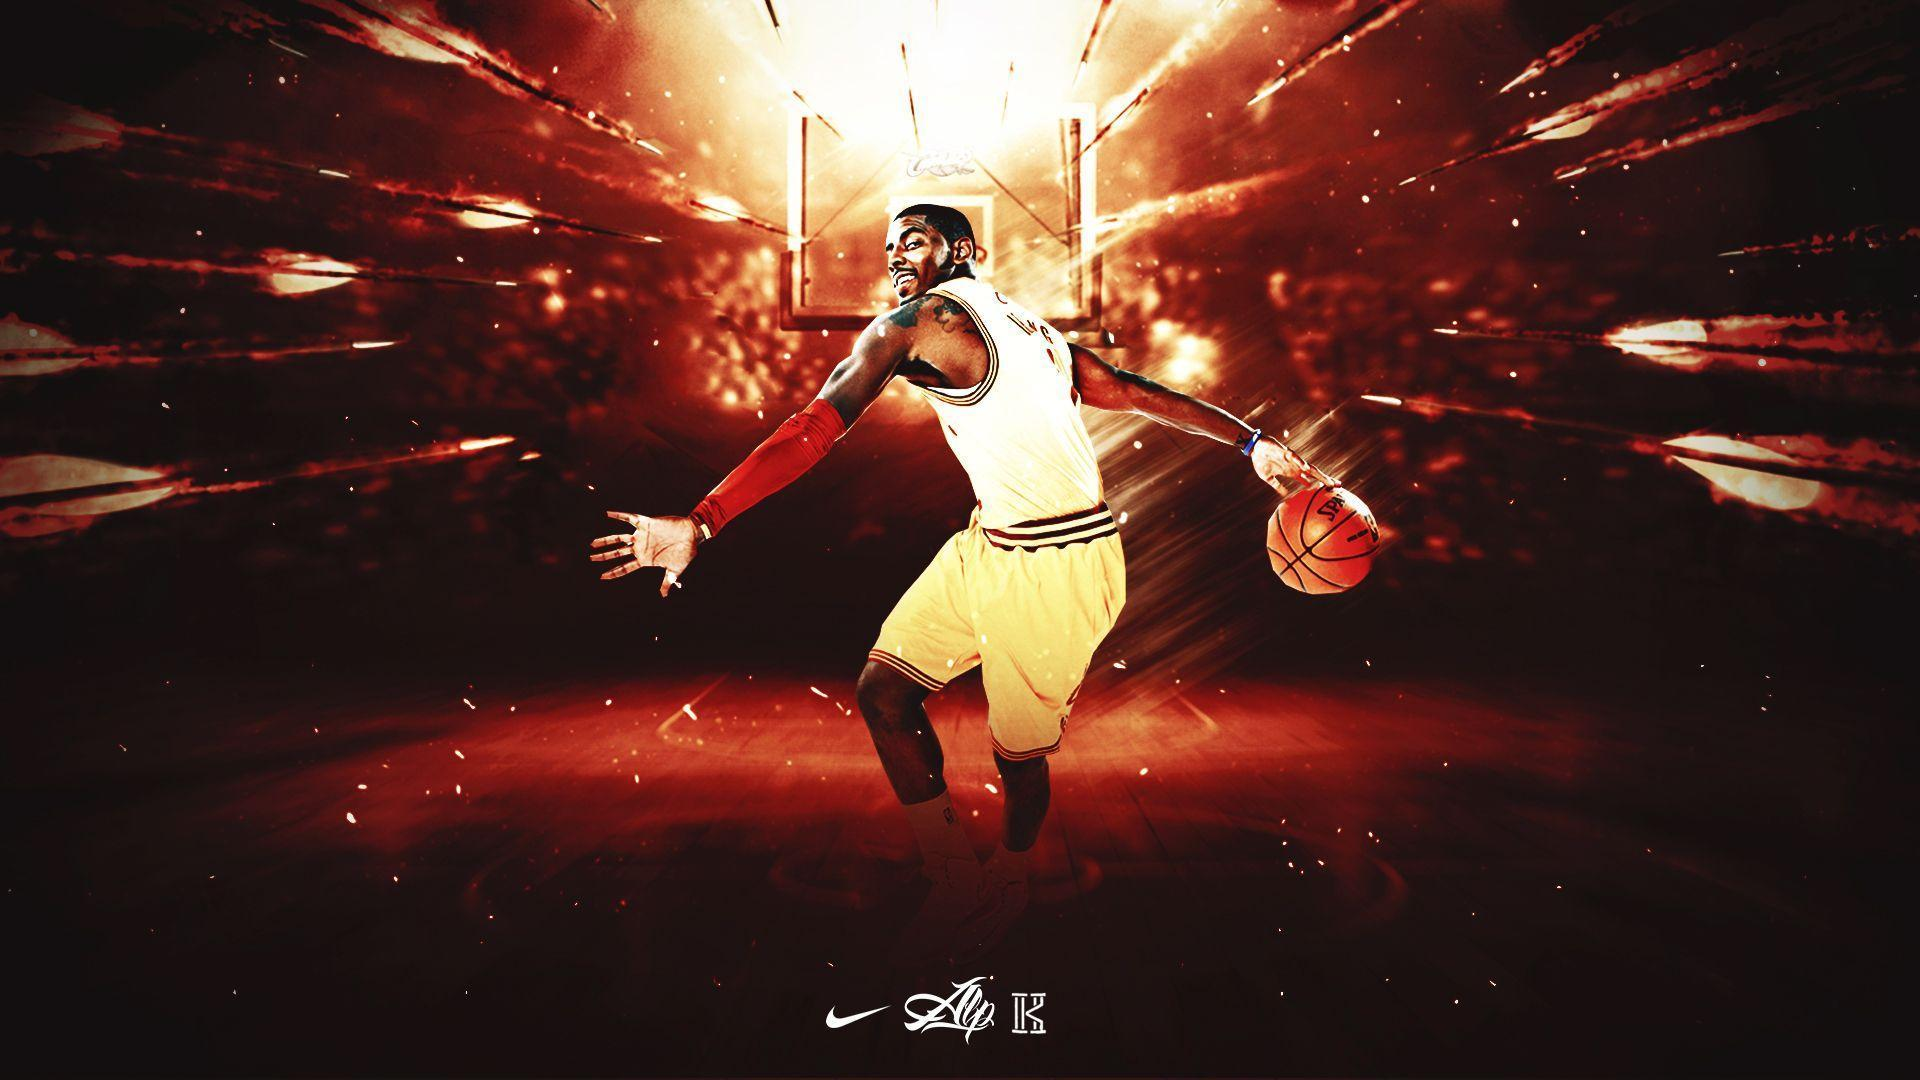 Kyrie Irving Logo Wallpapers - Wallpaper Cave